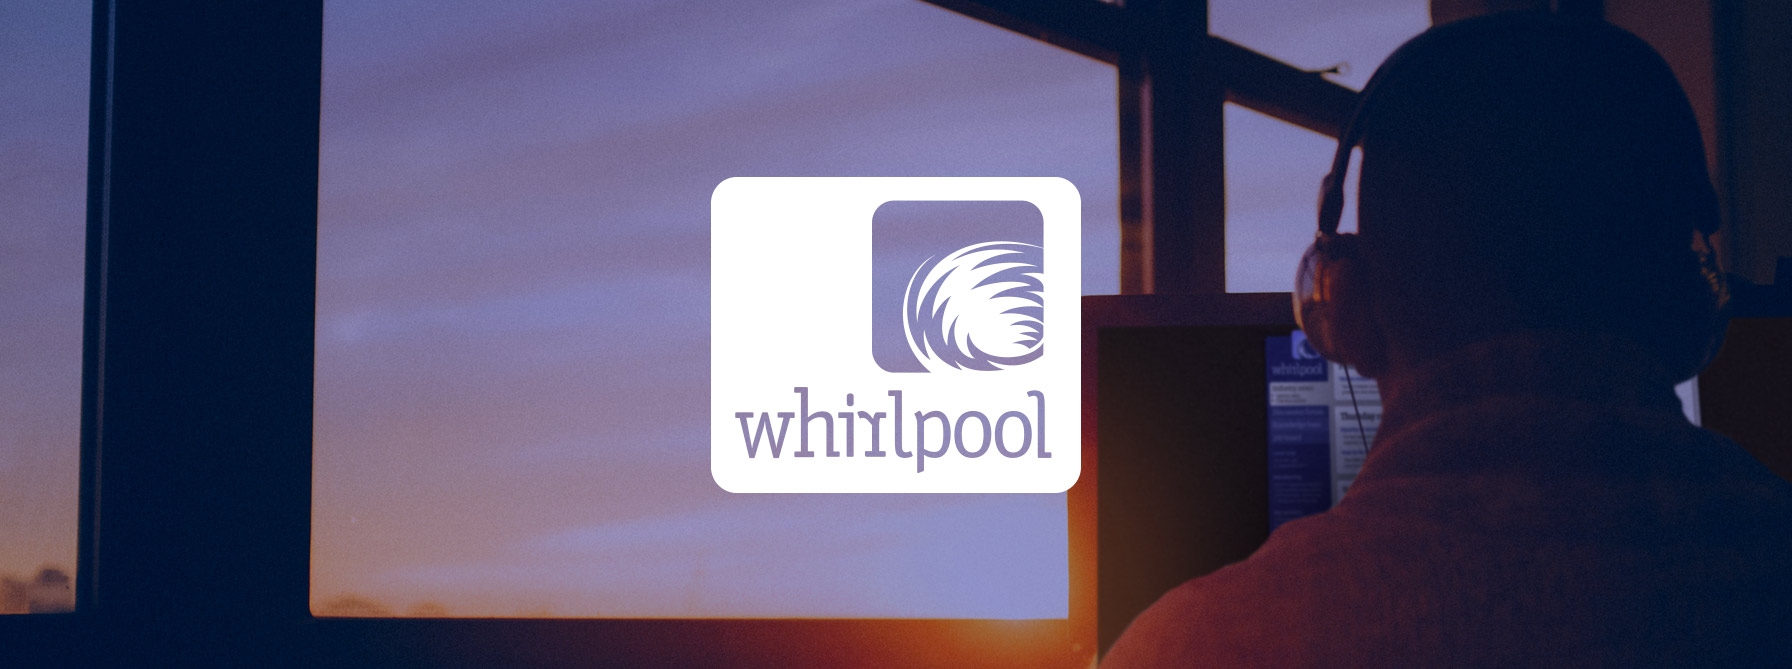 Whirlpool forums: should finance brands have a presence? header